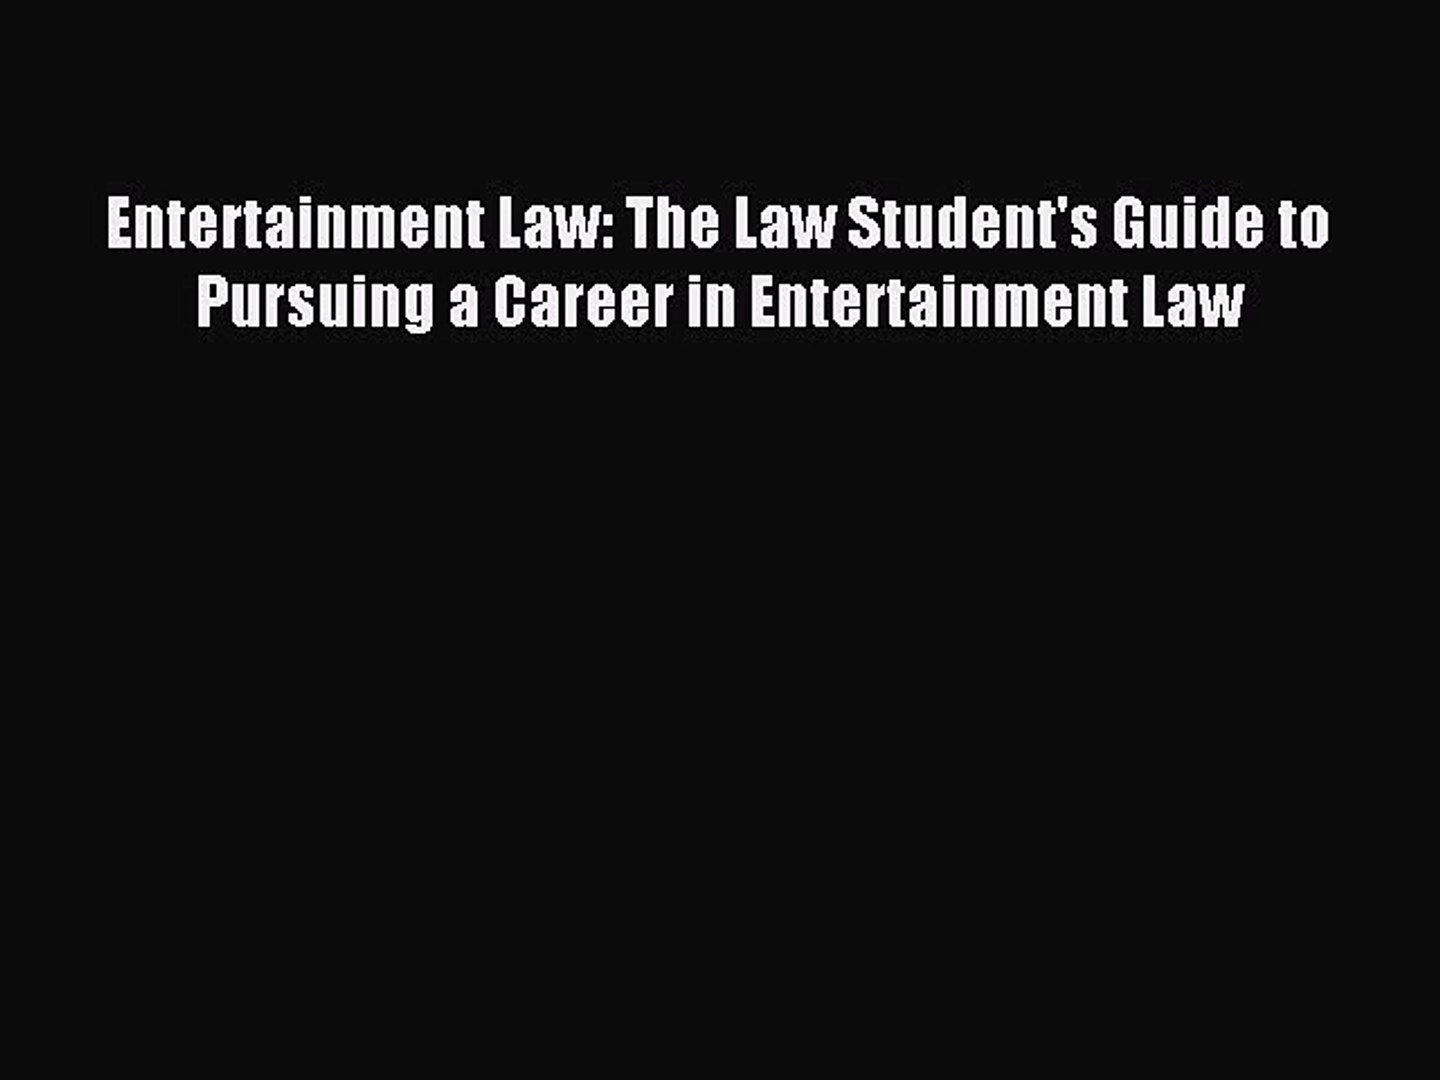 [Download PDF] Entertainment Law: The Law Student's Guide to Pursuing a Career in Entertainment